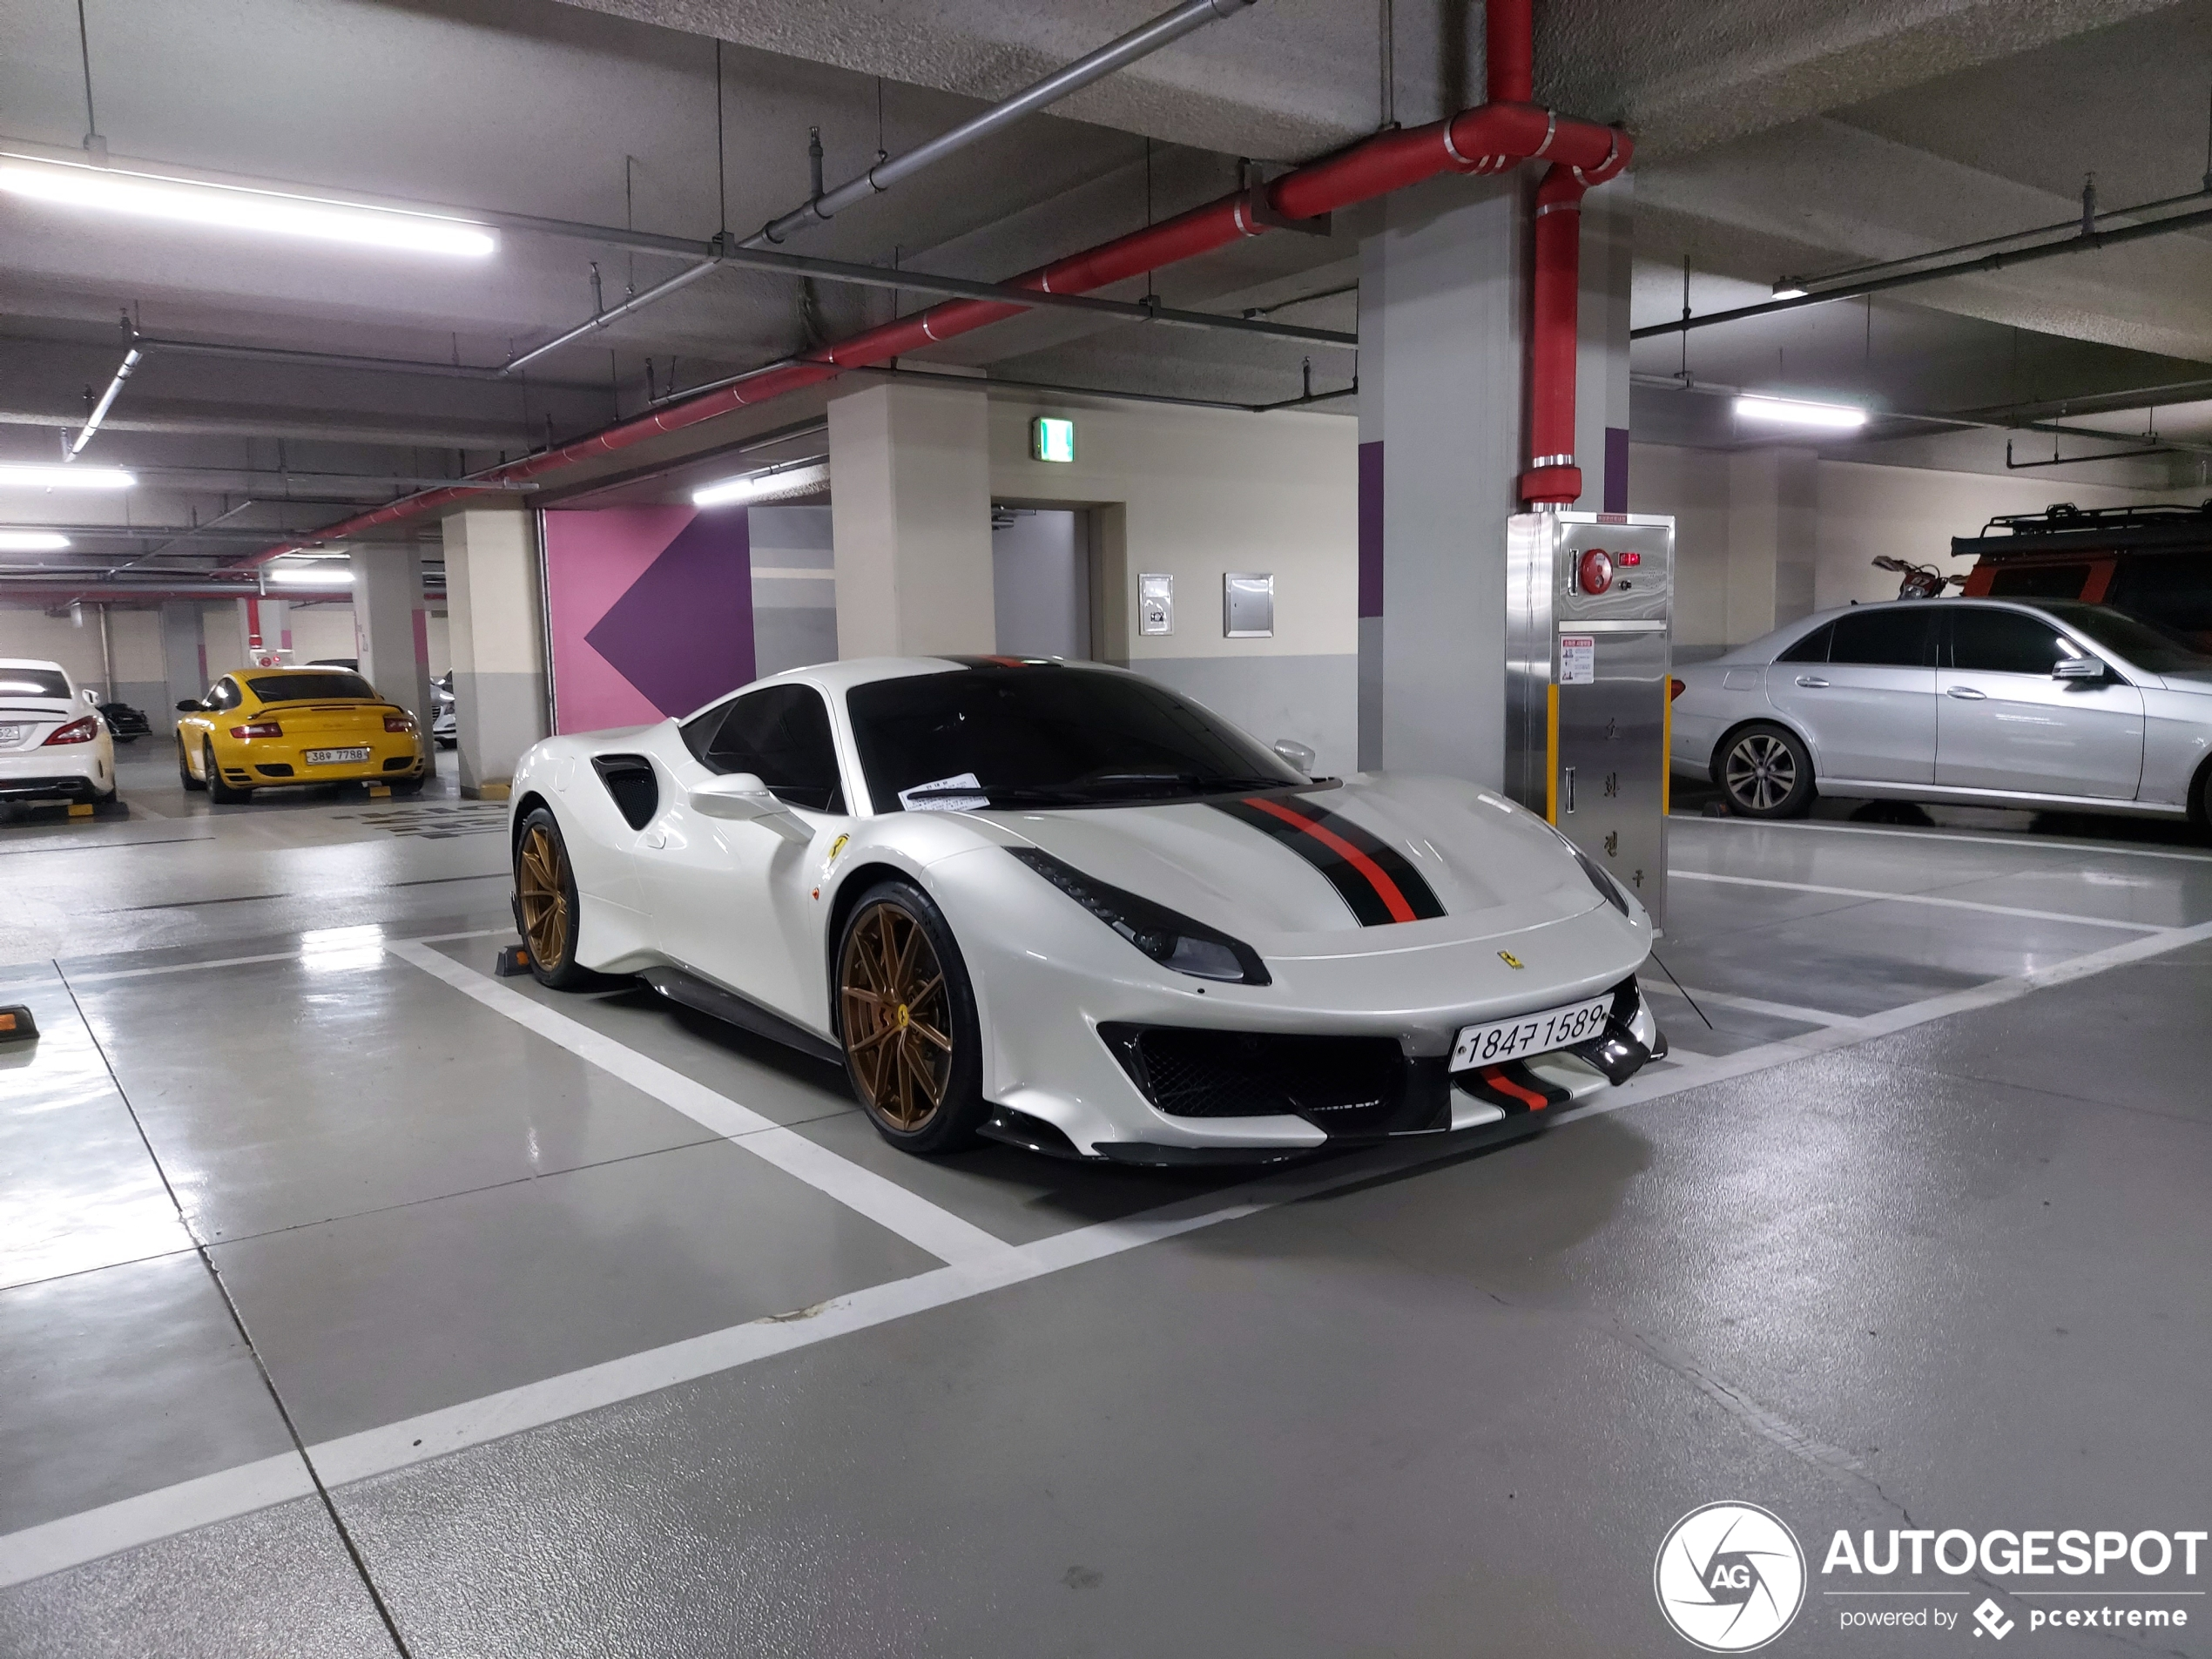 A new bunch of 488 Pista's have been added to the site